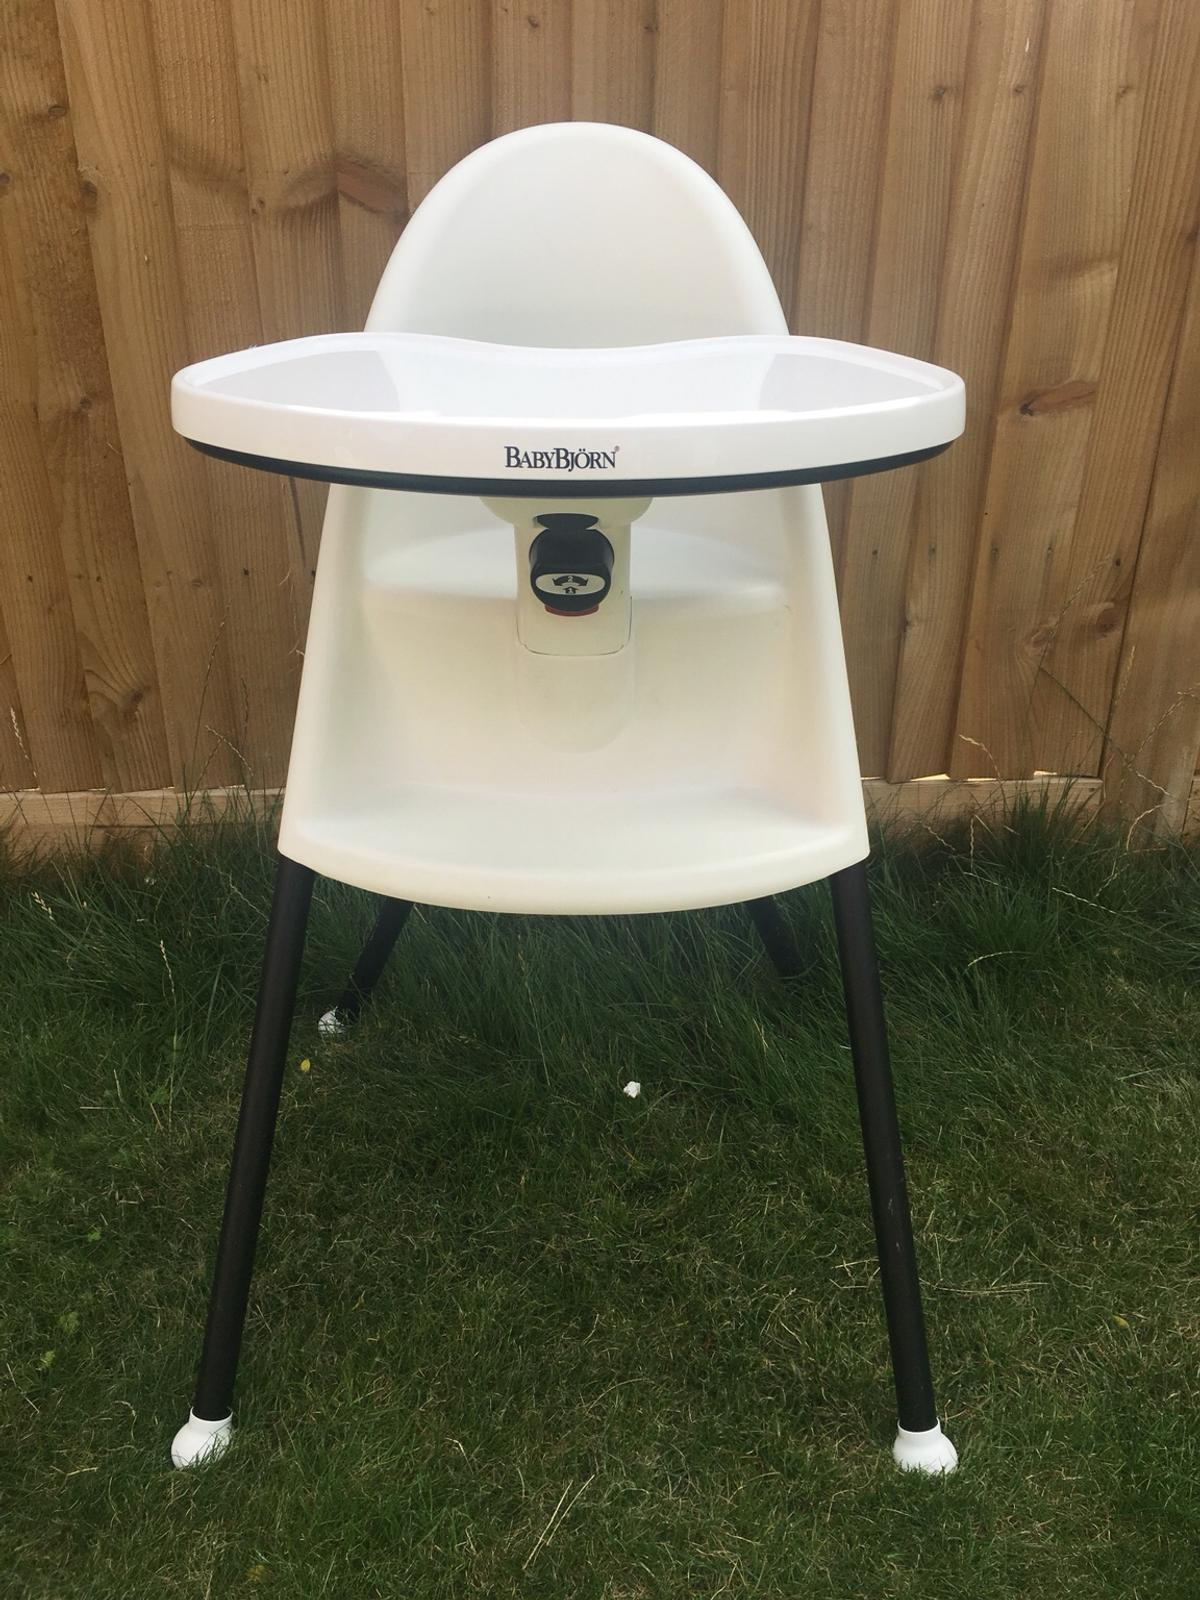 60af72d80db Baby Björn high chair in RG7 Wood for £80.00 for sale - Shpock